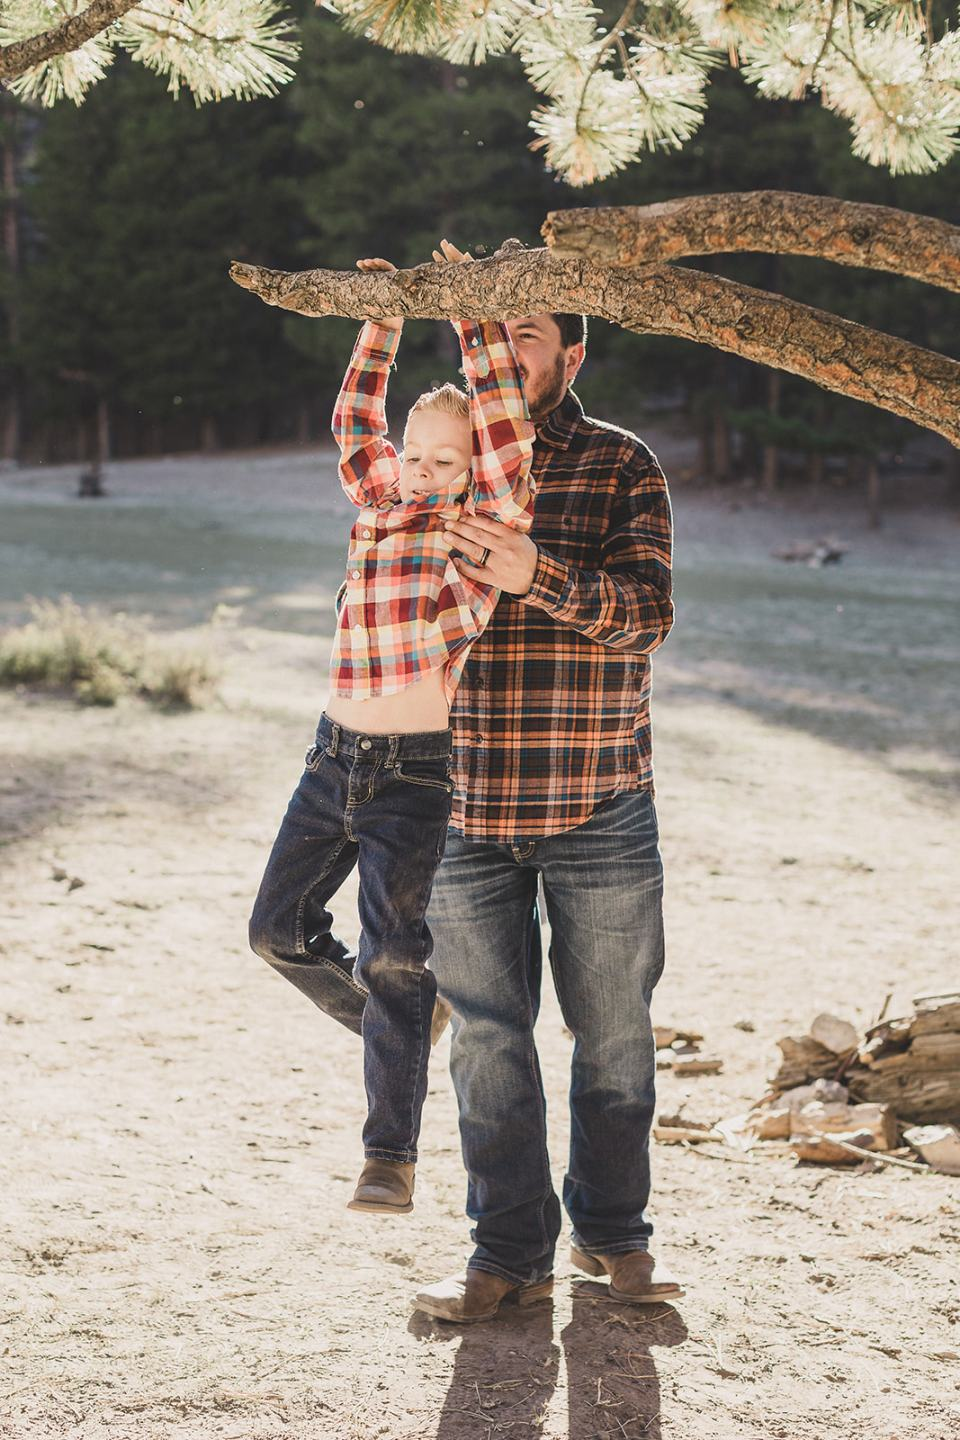 dad lifts son onto tree branch